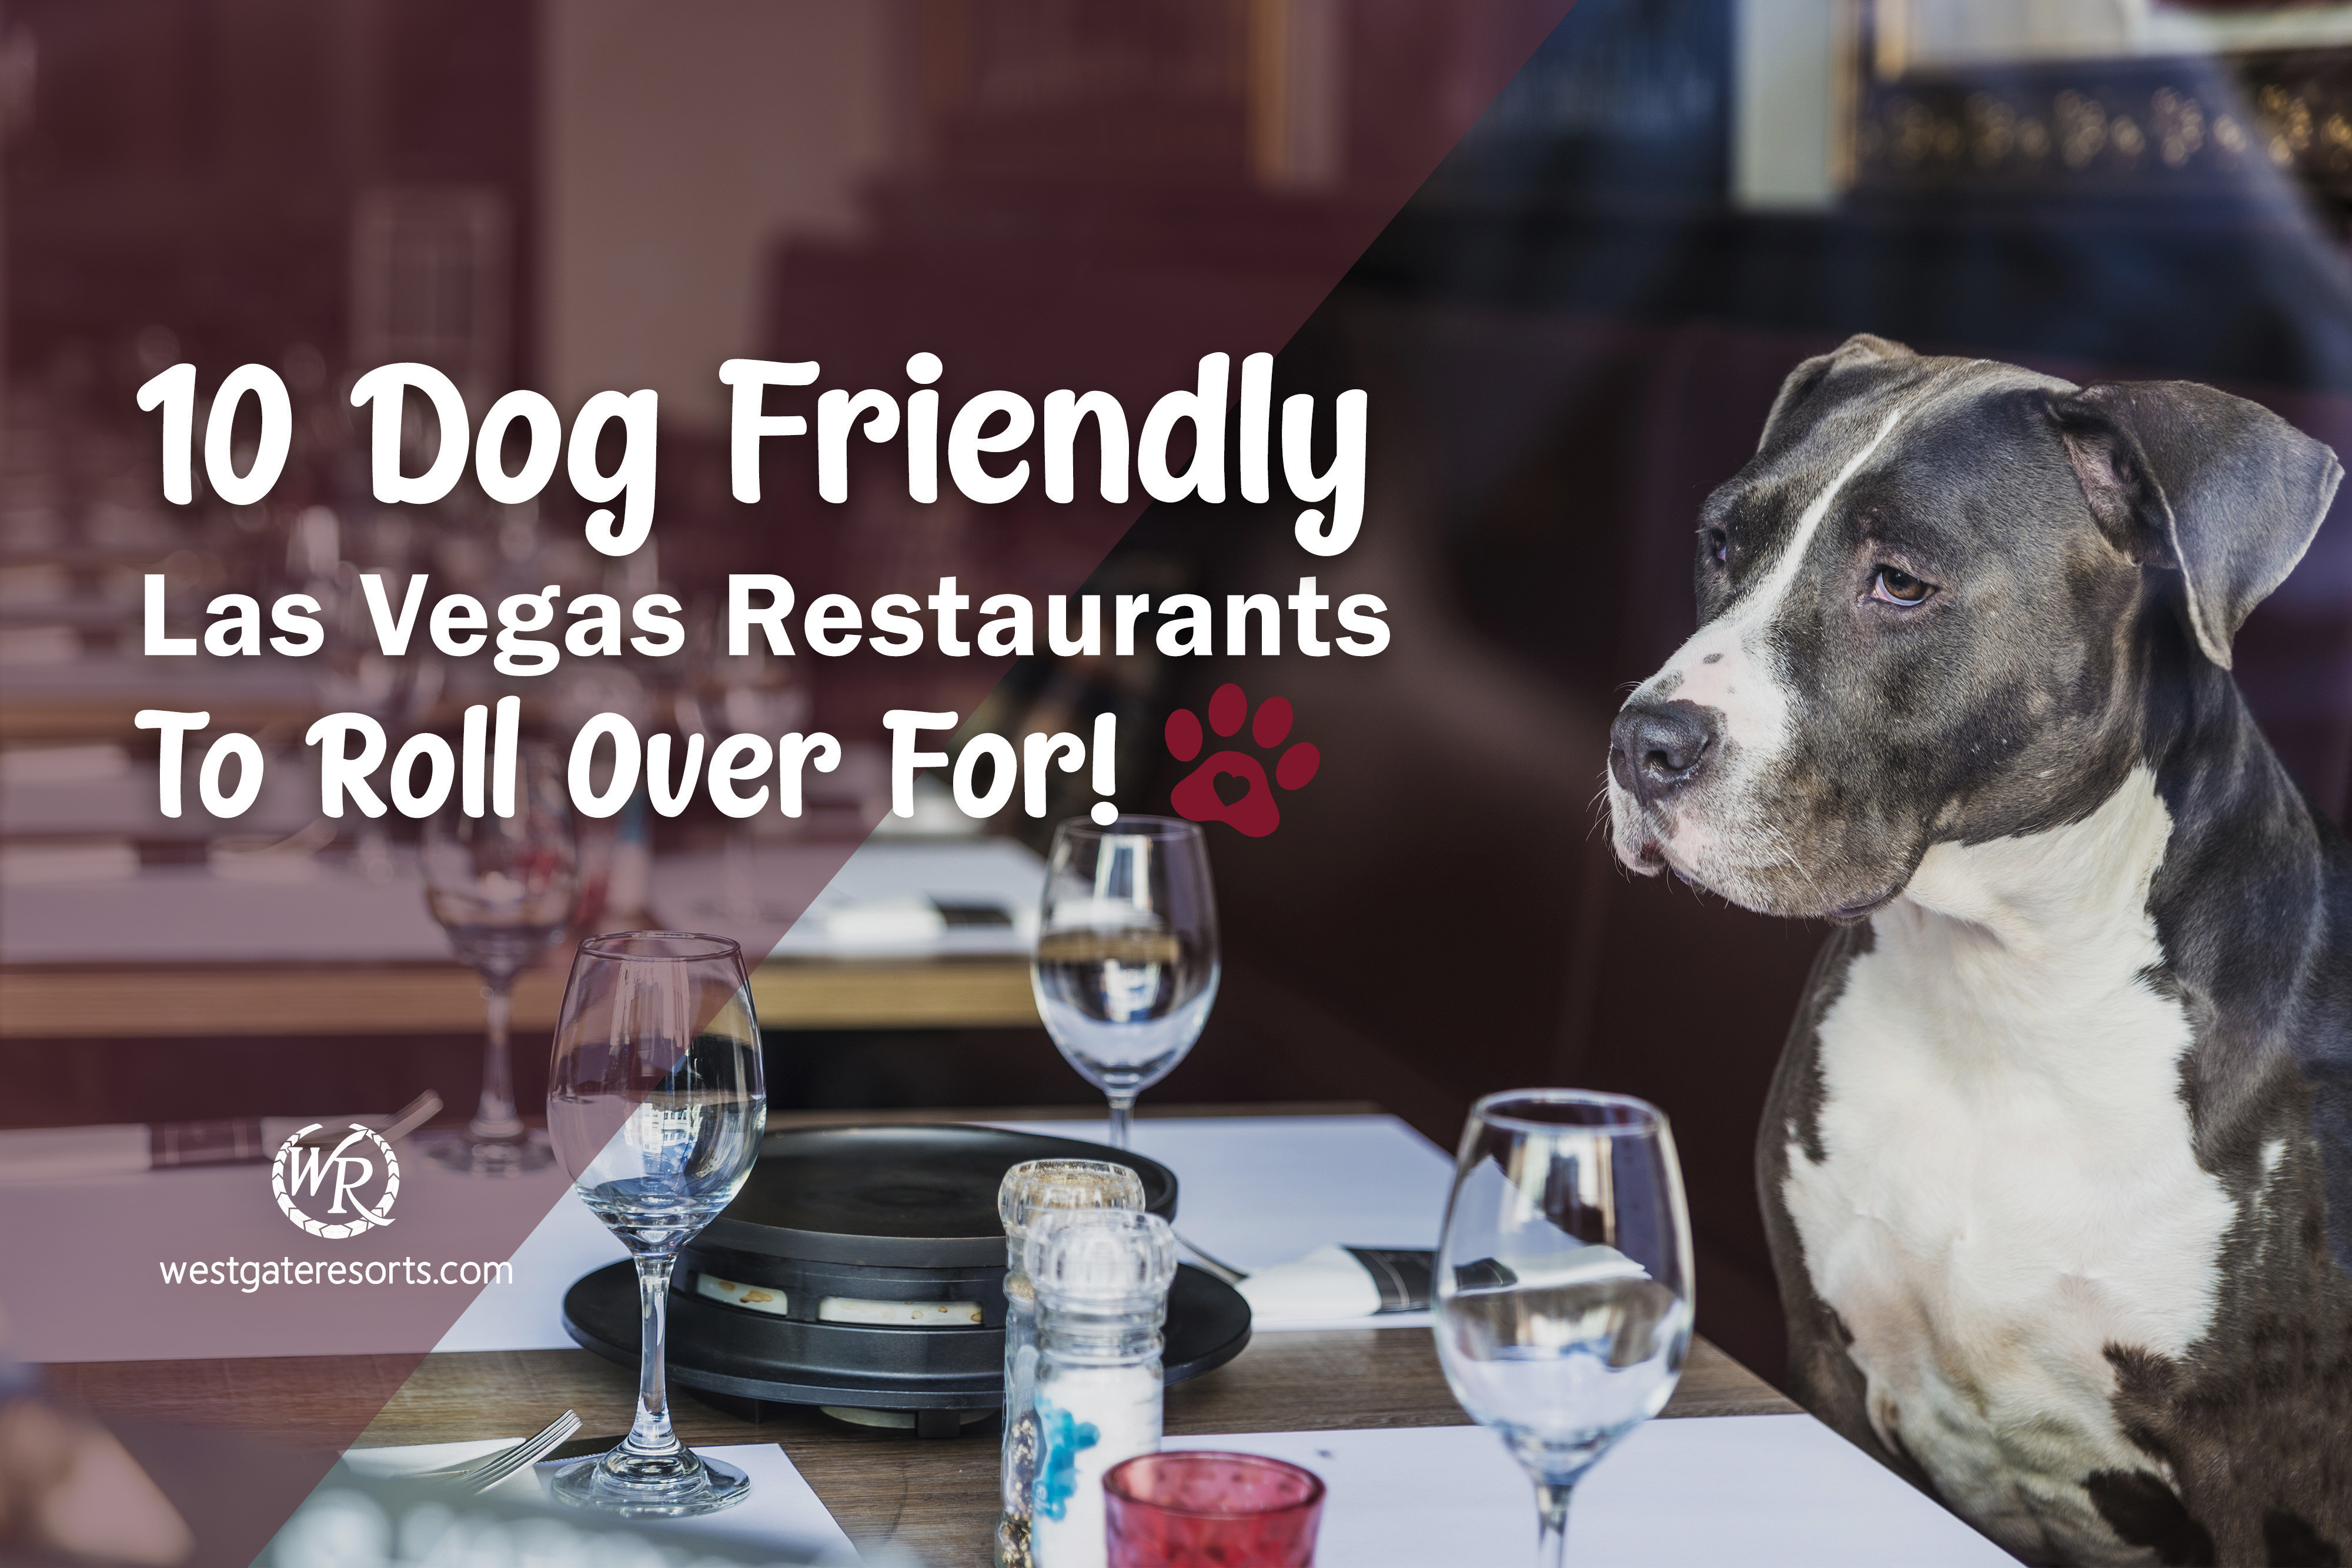 10 Dog Friendly Las Vegas Restaurants To Roll Over For!